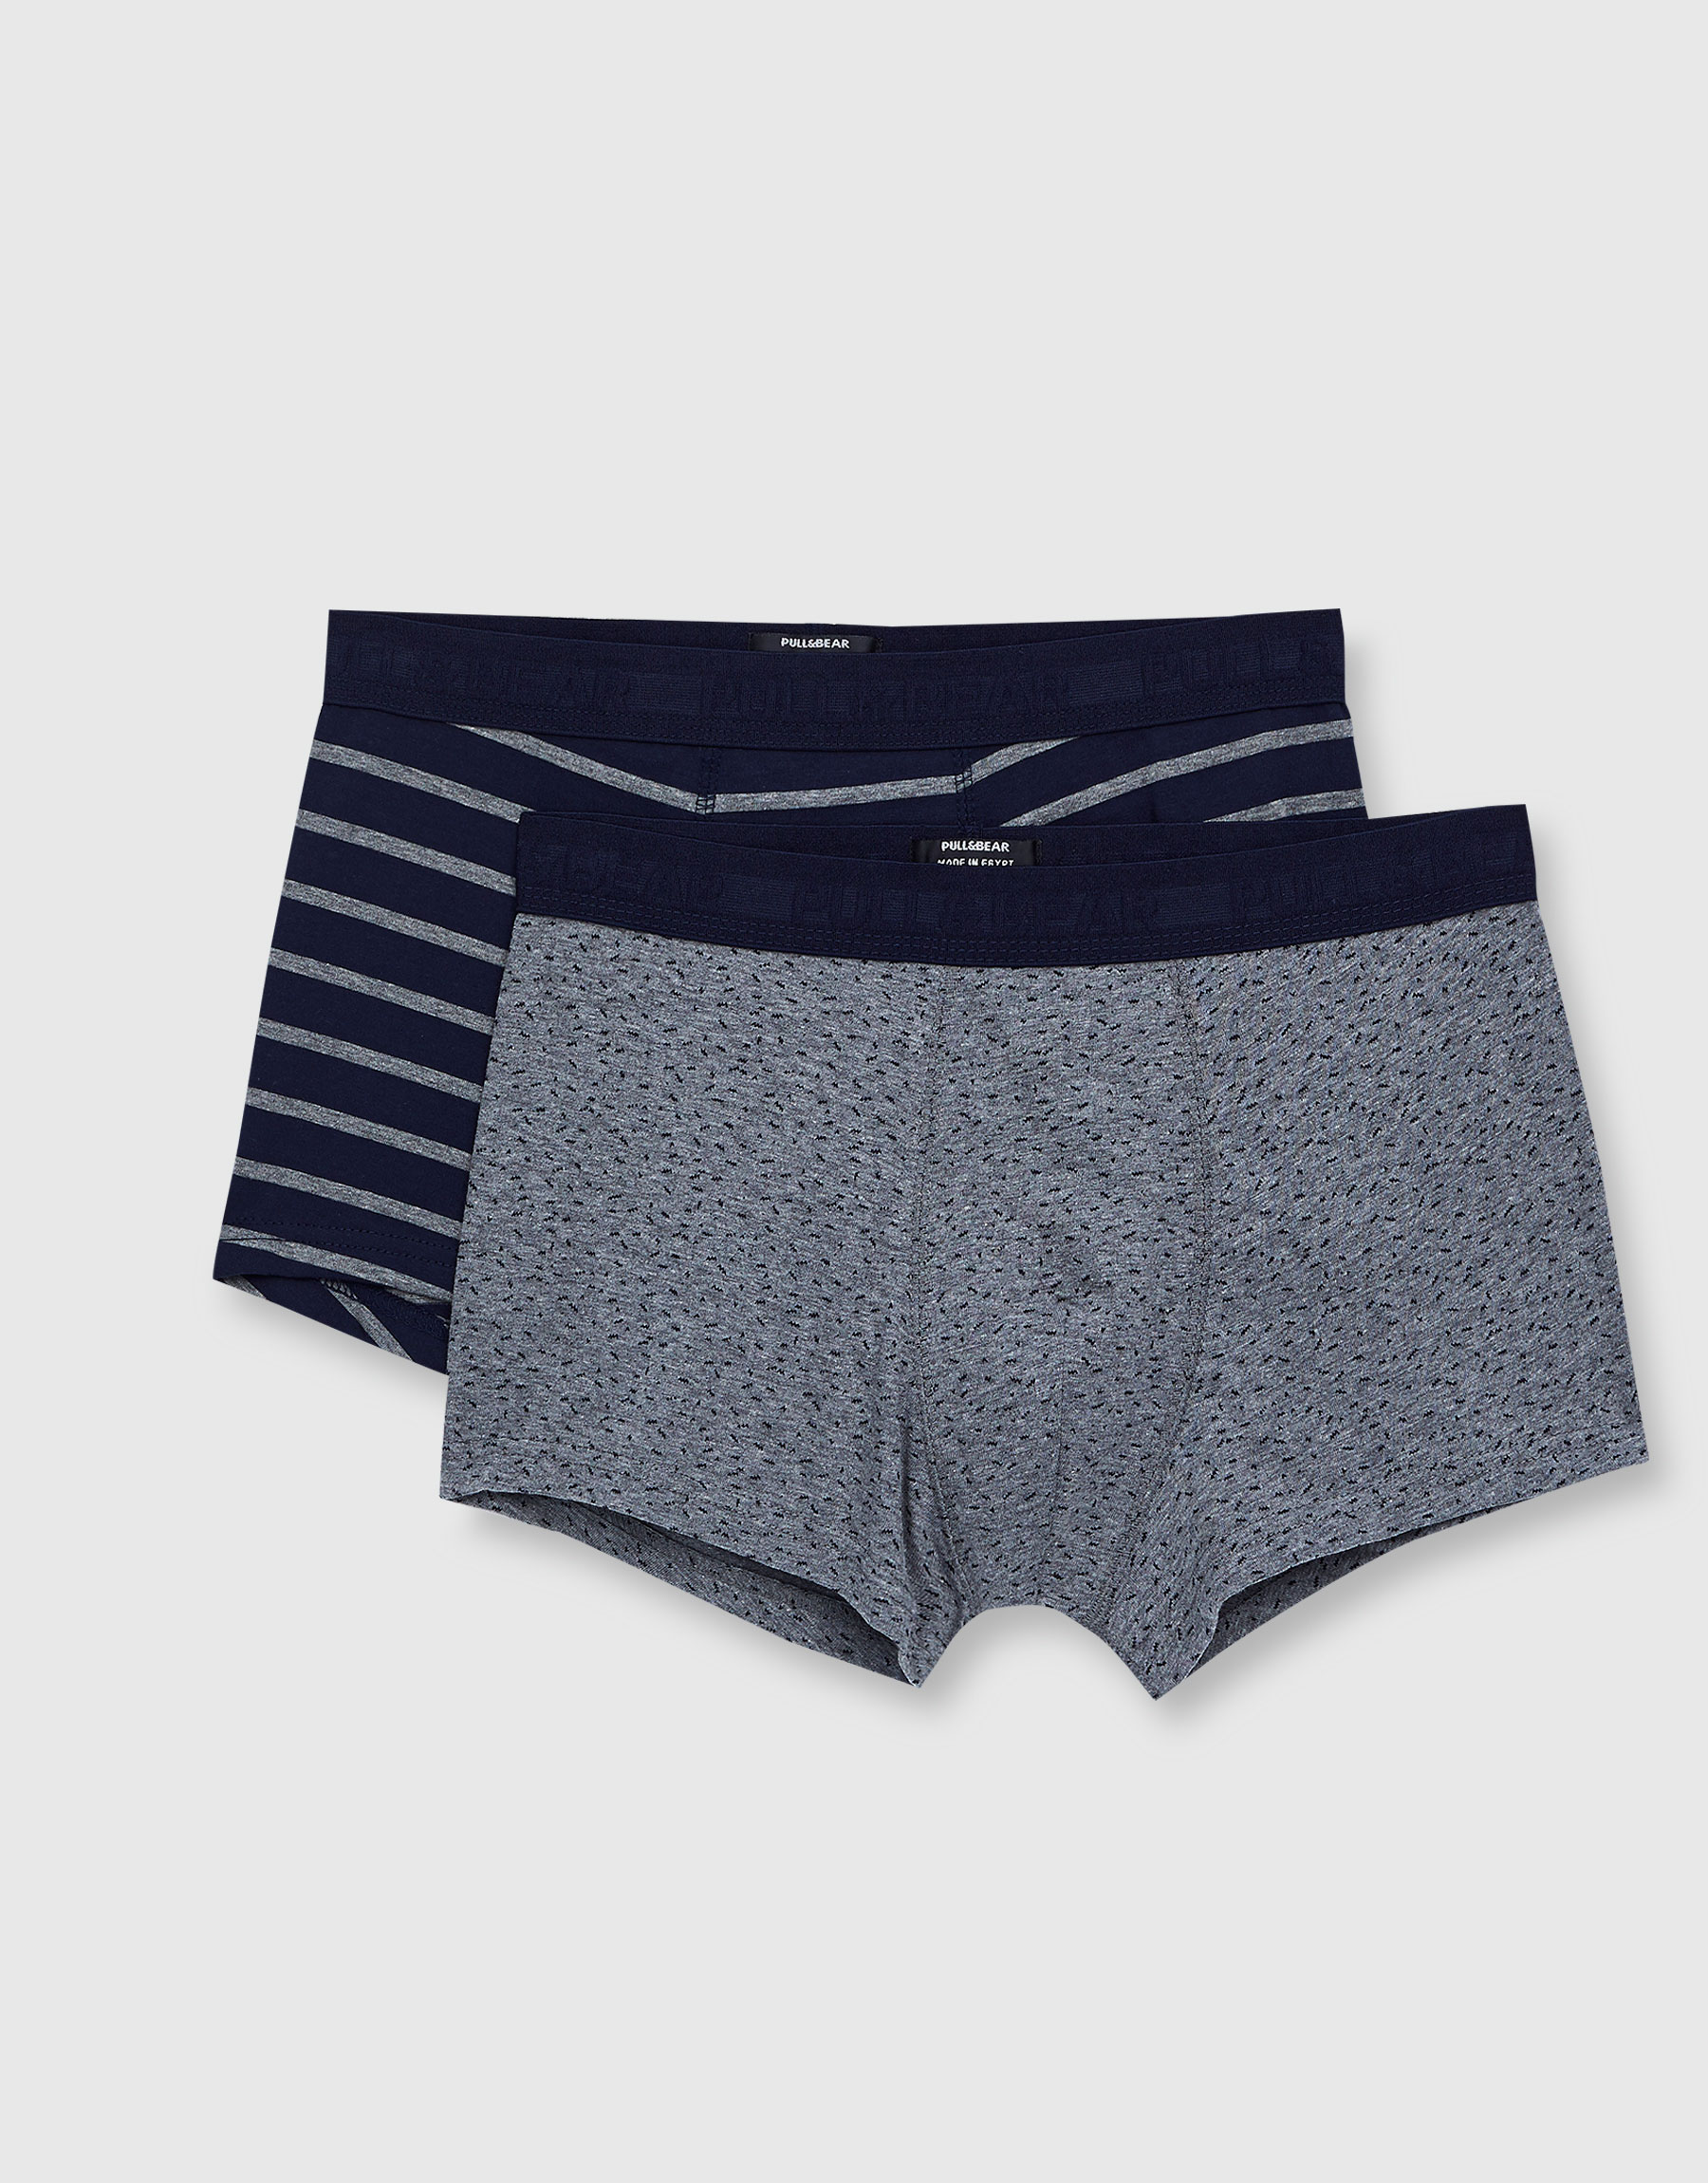 2-Pack of striped and polka dot boxers